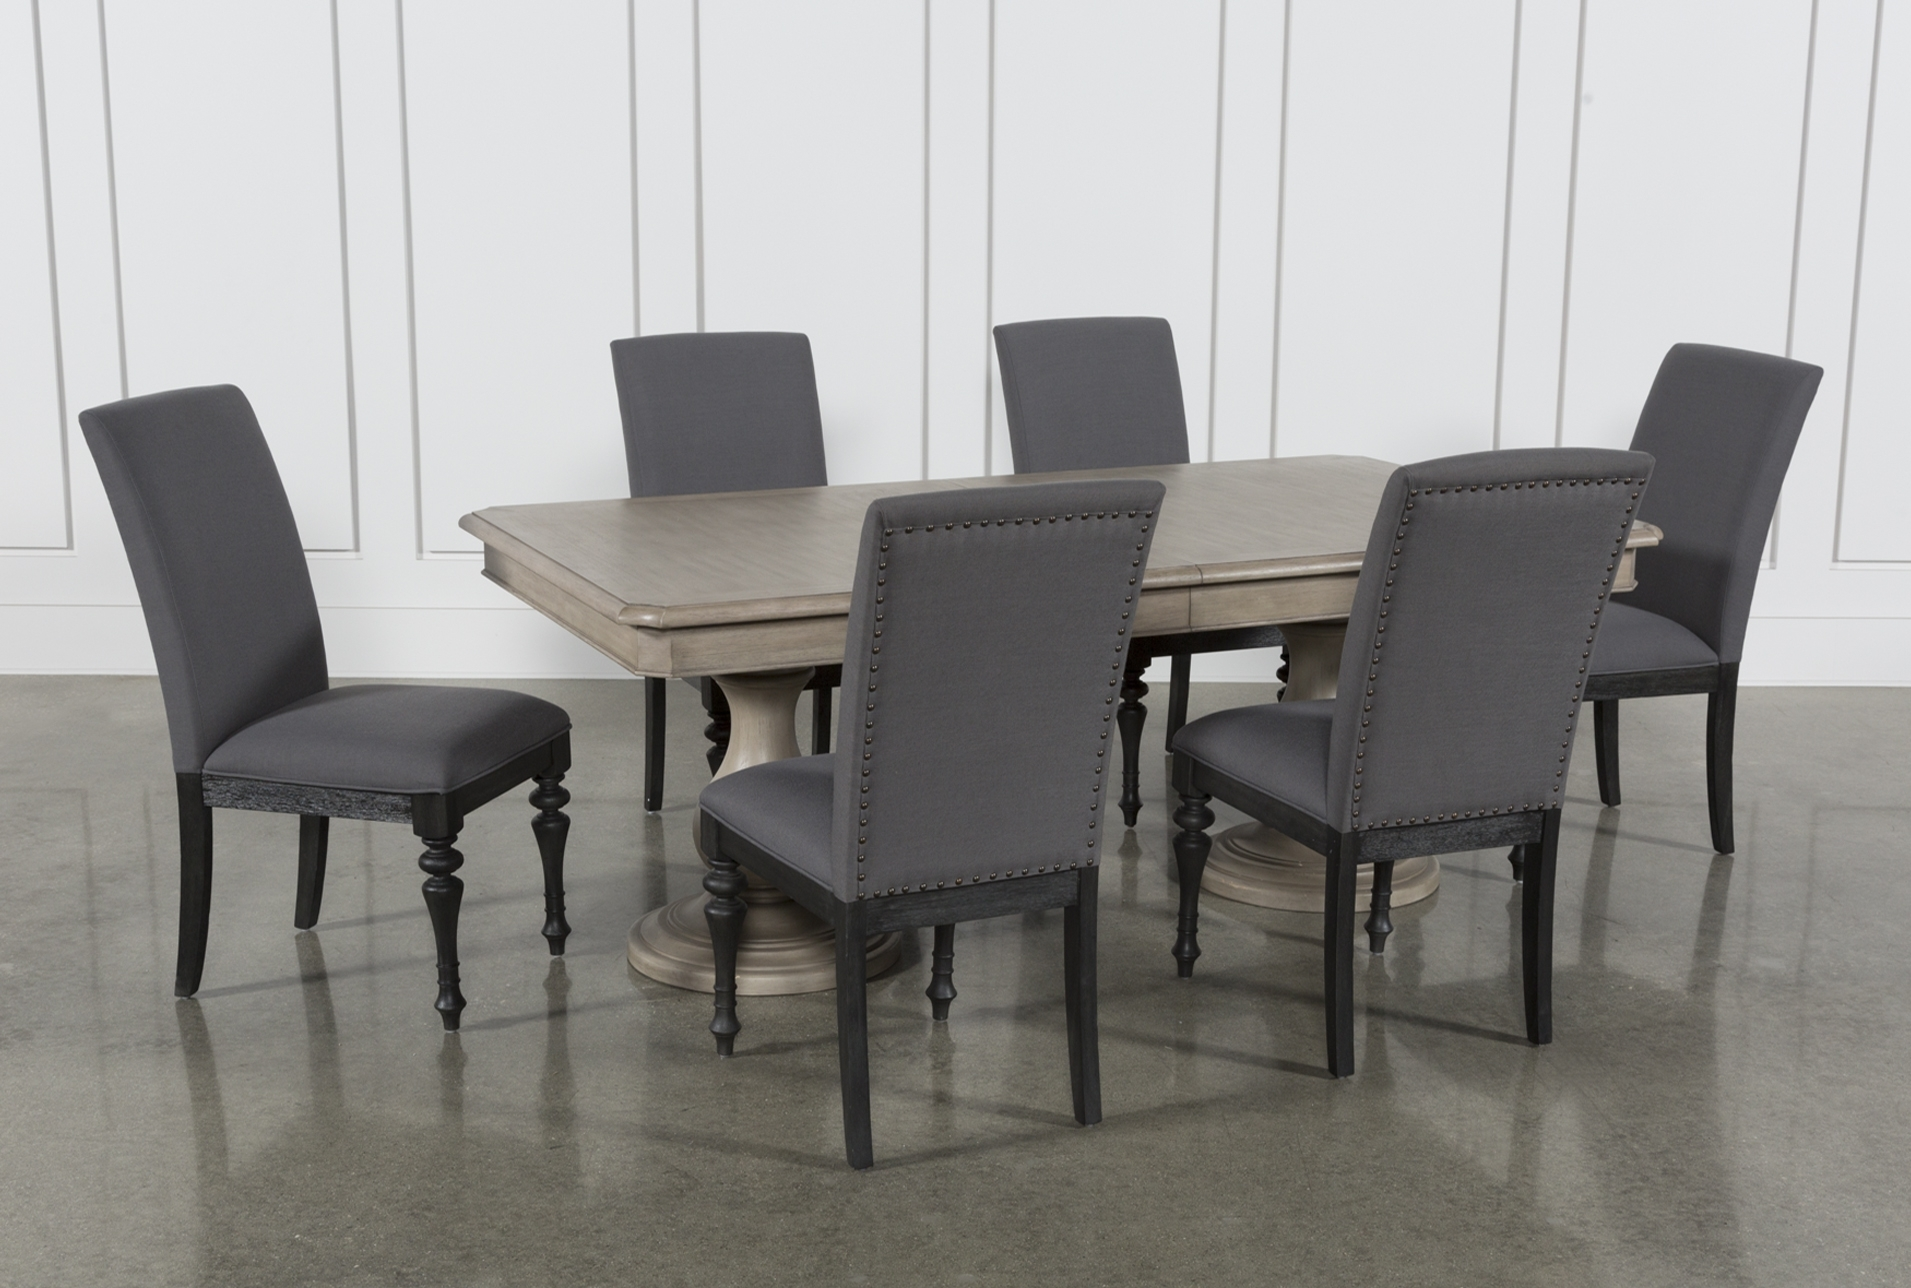 Global Furniture Bar Table Black With Regard To Current Jaxon 6 Piece Rectangle Dining Sets With Bench & Wood Chairs (View 14 of 20)